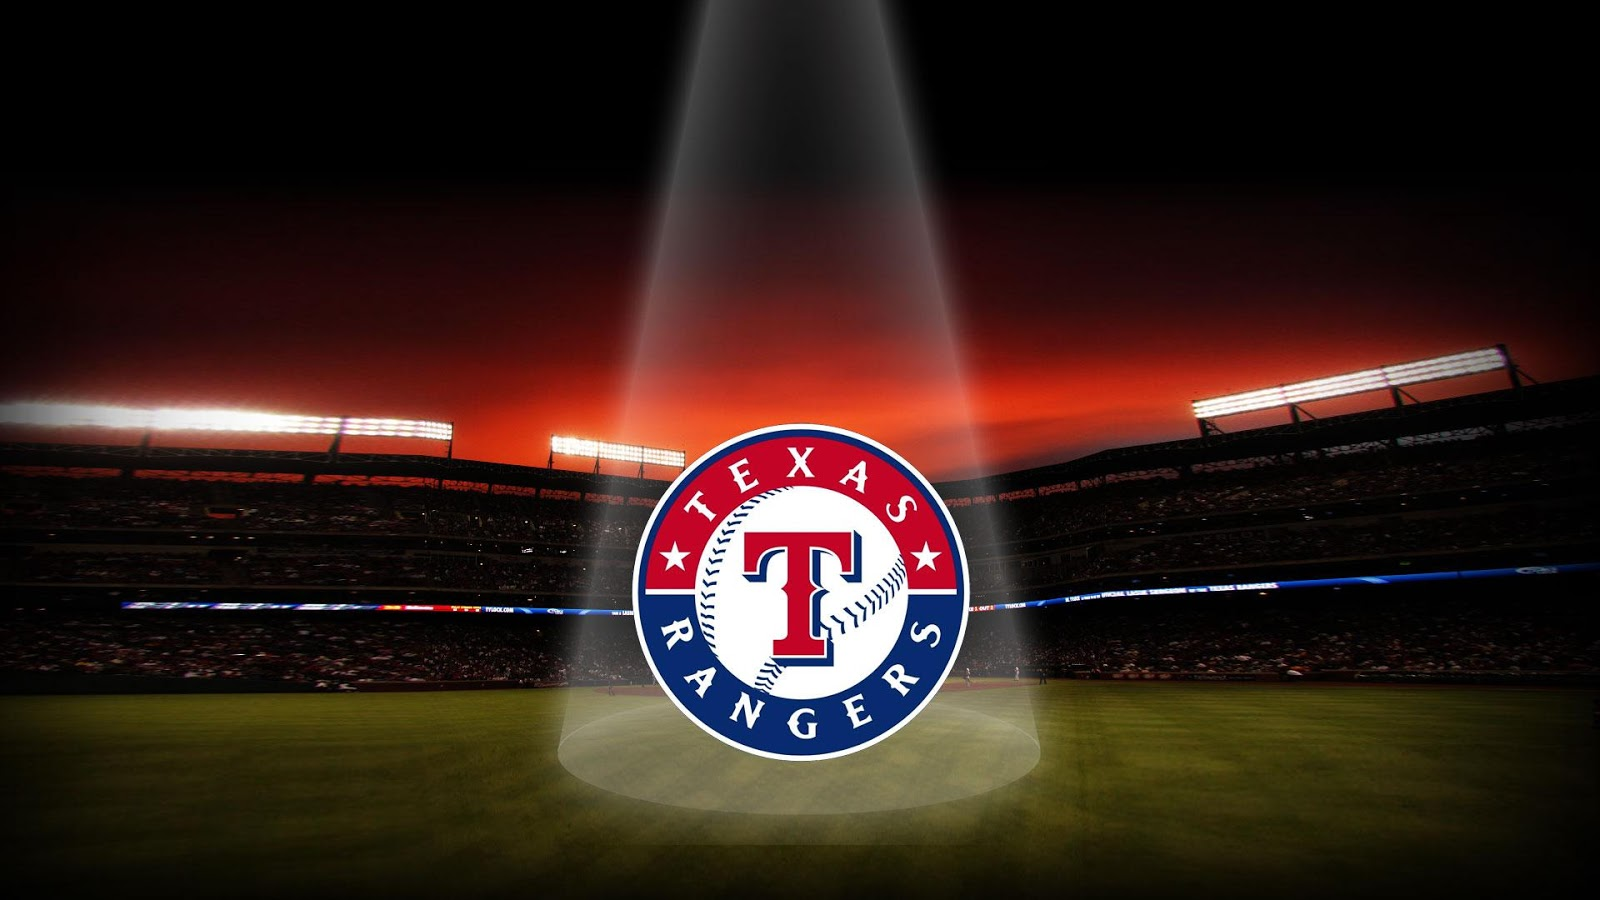 Texas Rangers Wallpaper #145942 - Resolution 1600x900 px